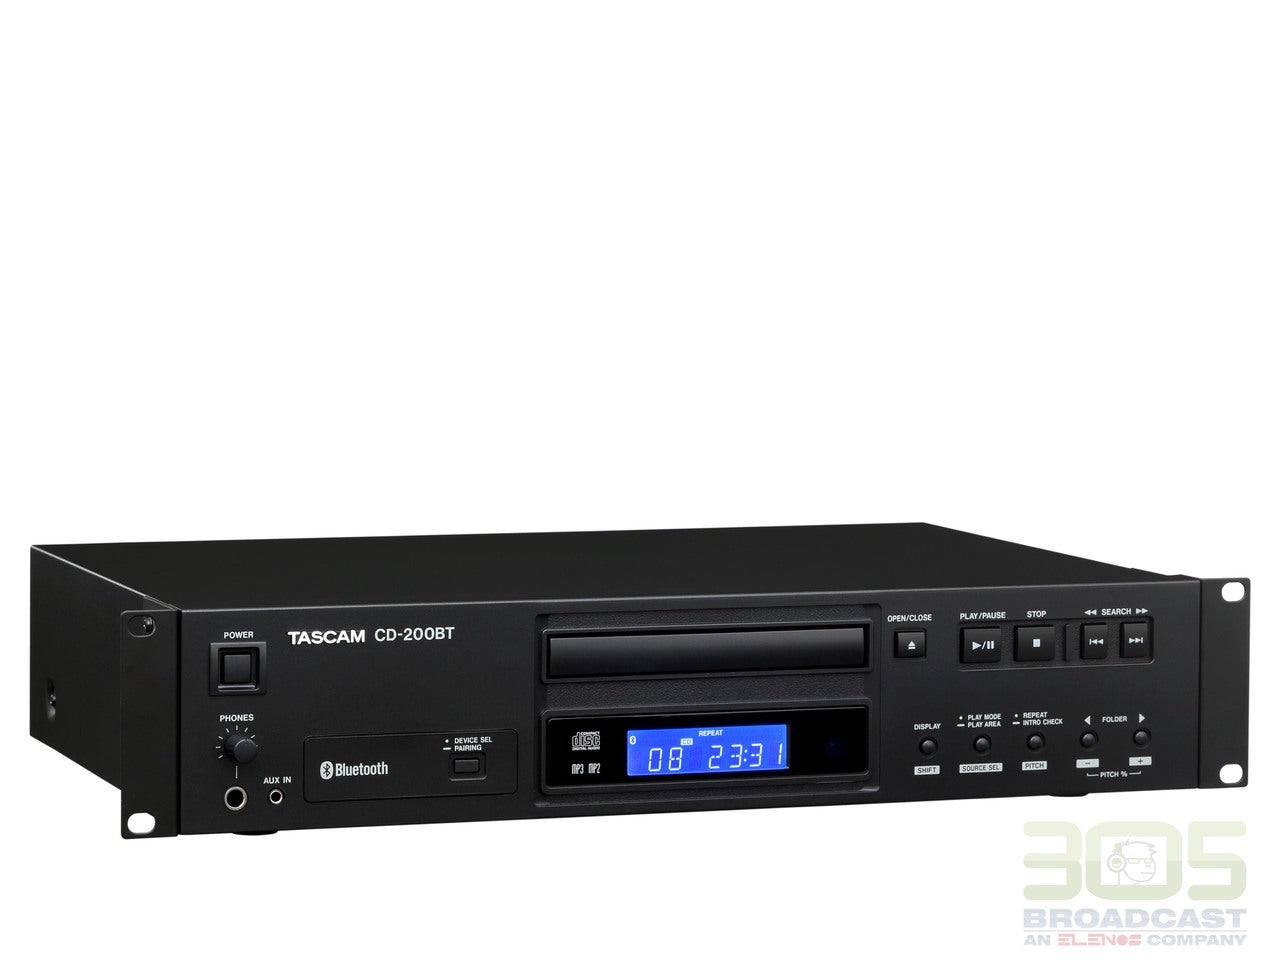 Tascam CD-200BT -  Professional CD Player with Bluetooth Receiver - 305broadcast